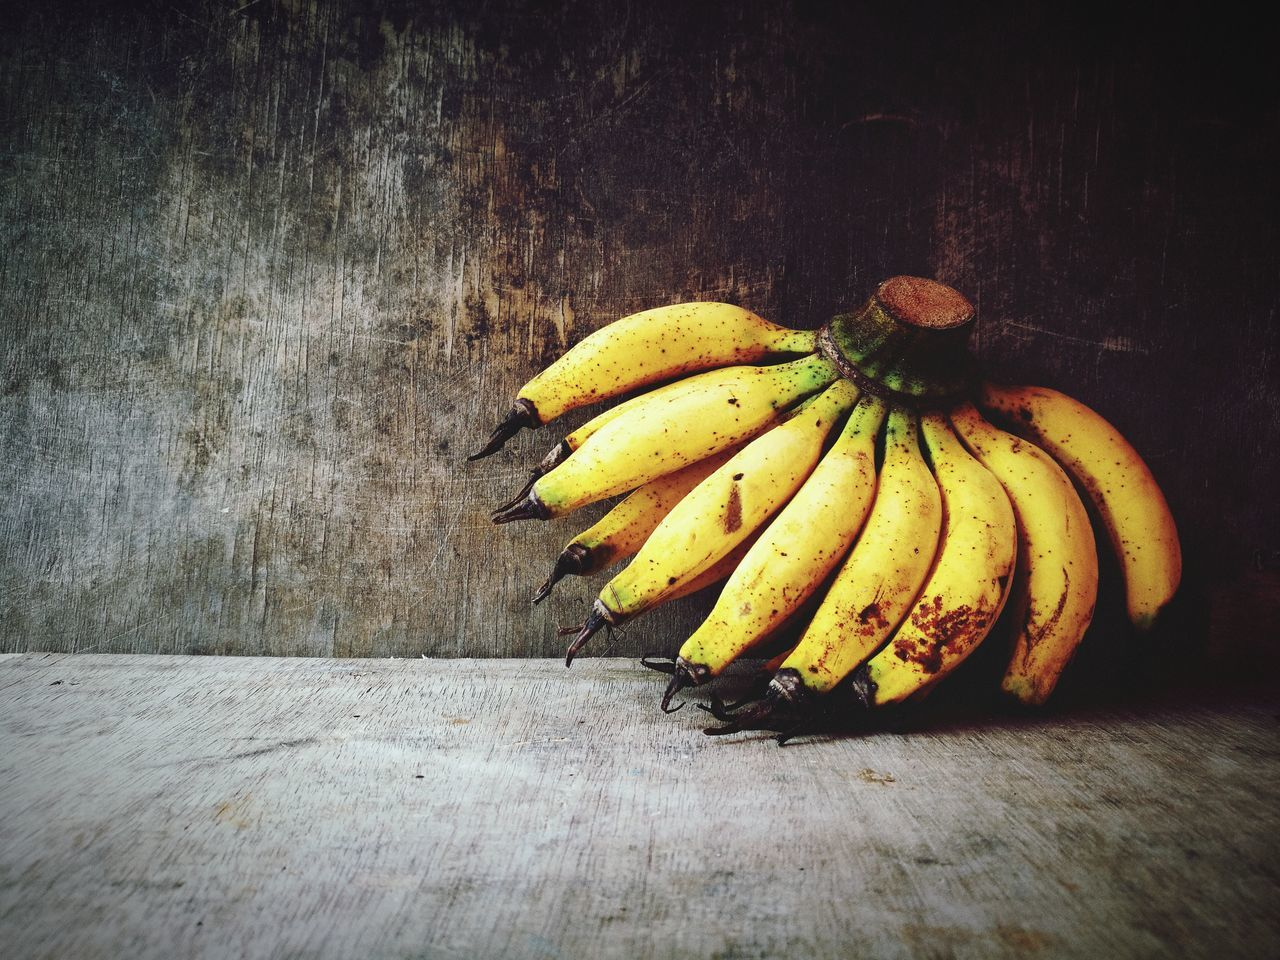 fruit, banana, food and drink, healthy eating, food, freshness, indoors, table, no people, yellow, banana peel, day, close-up